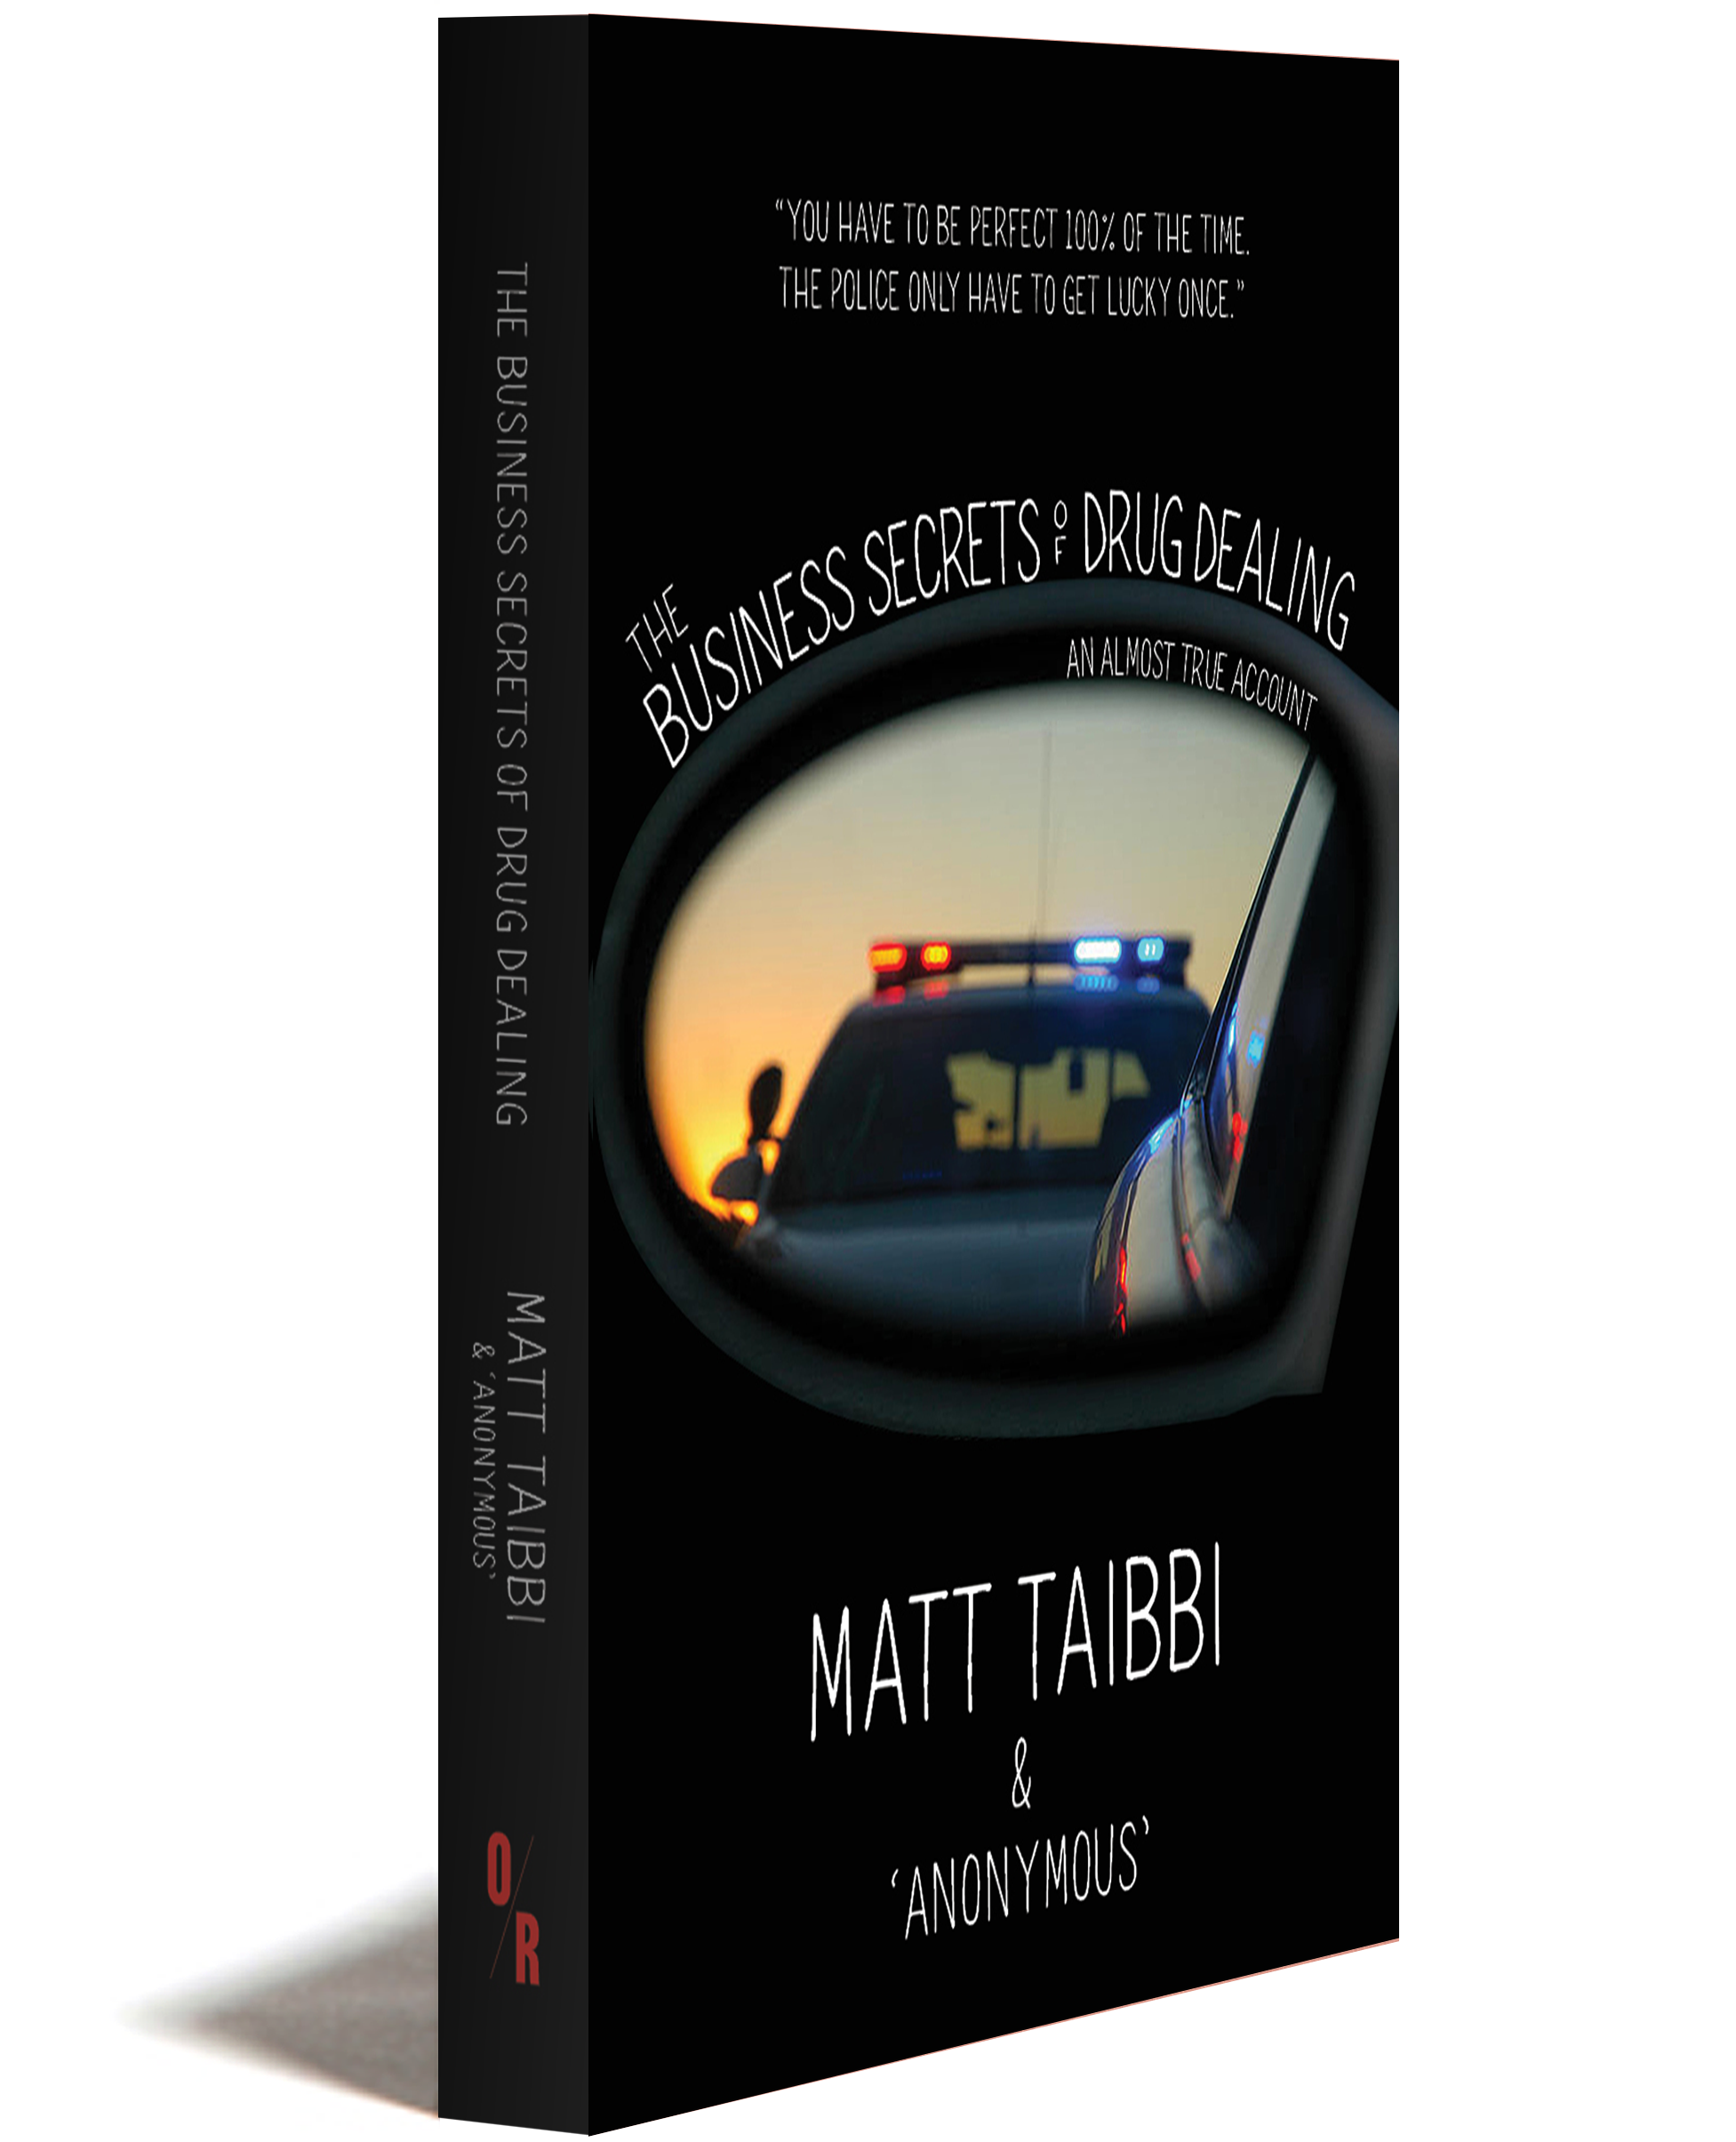 the business secrets of drug dealing cover